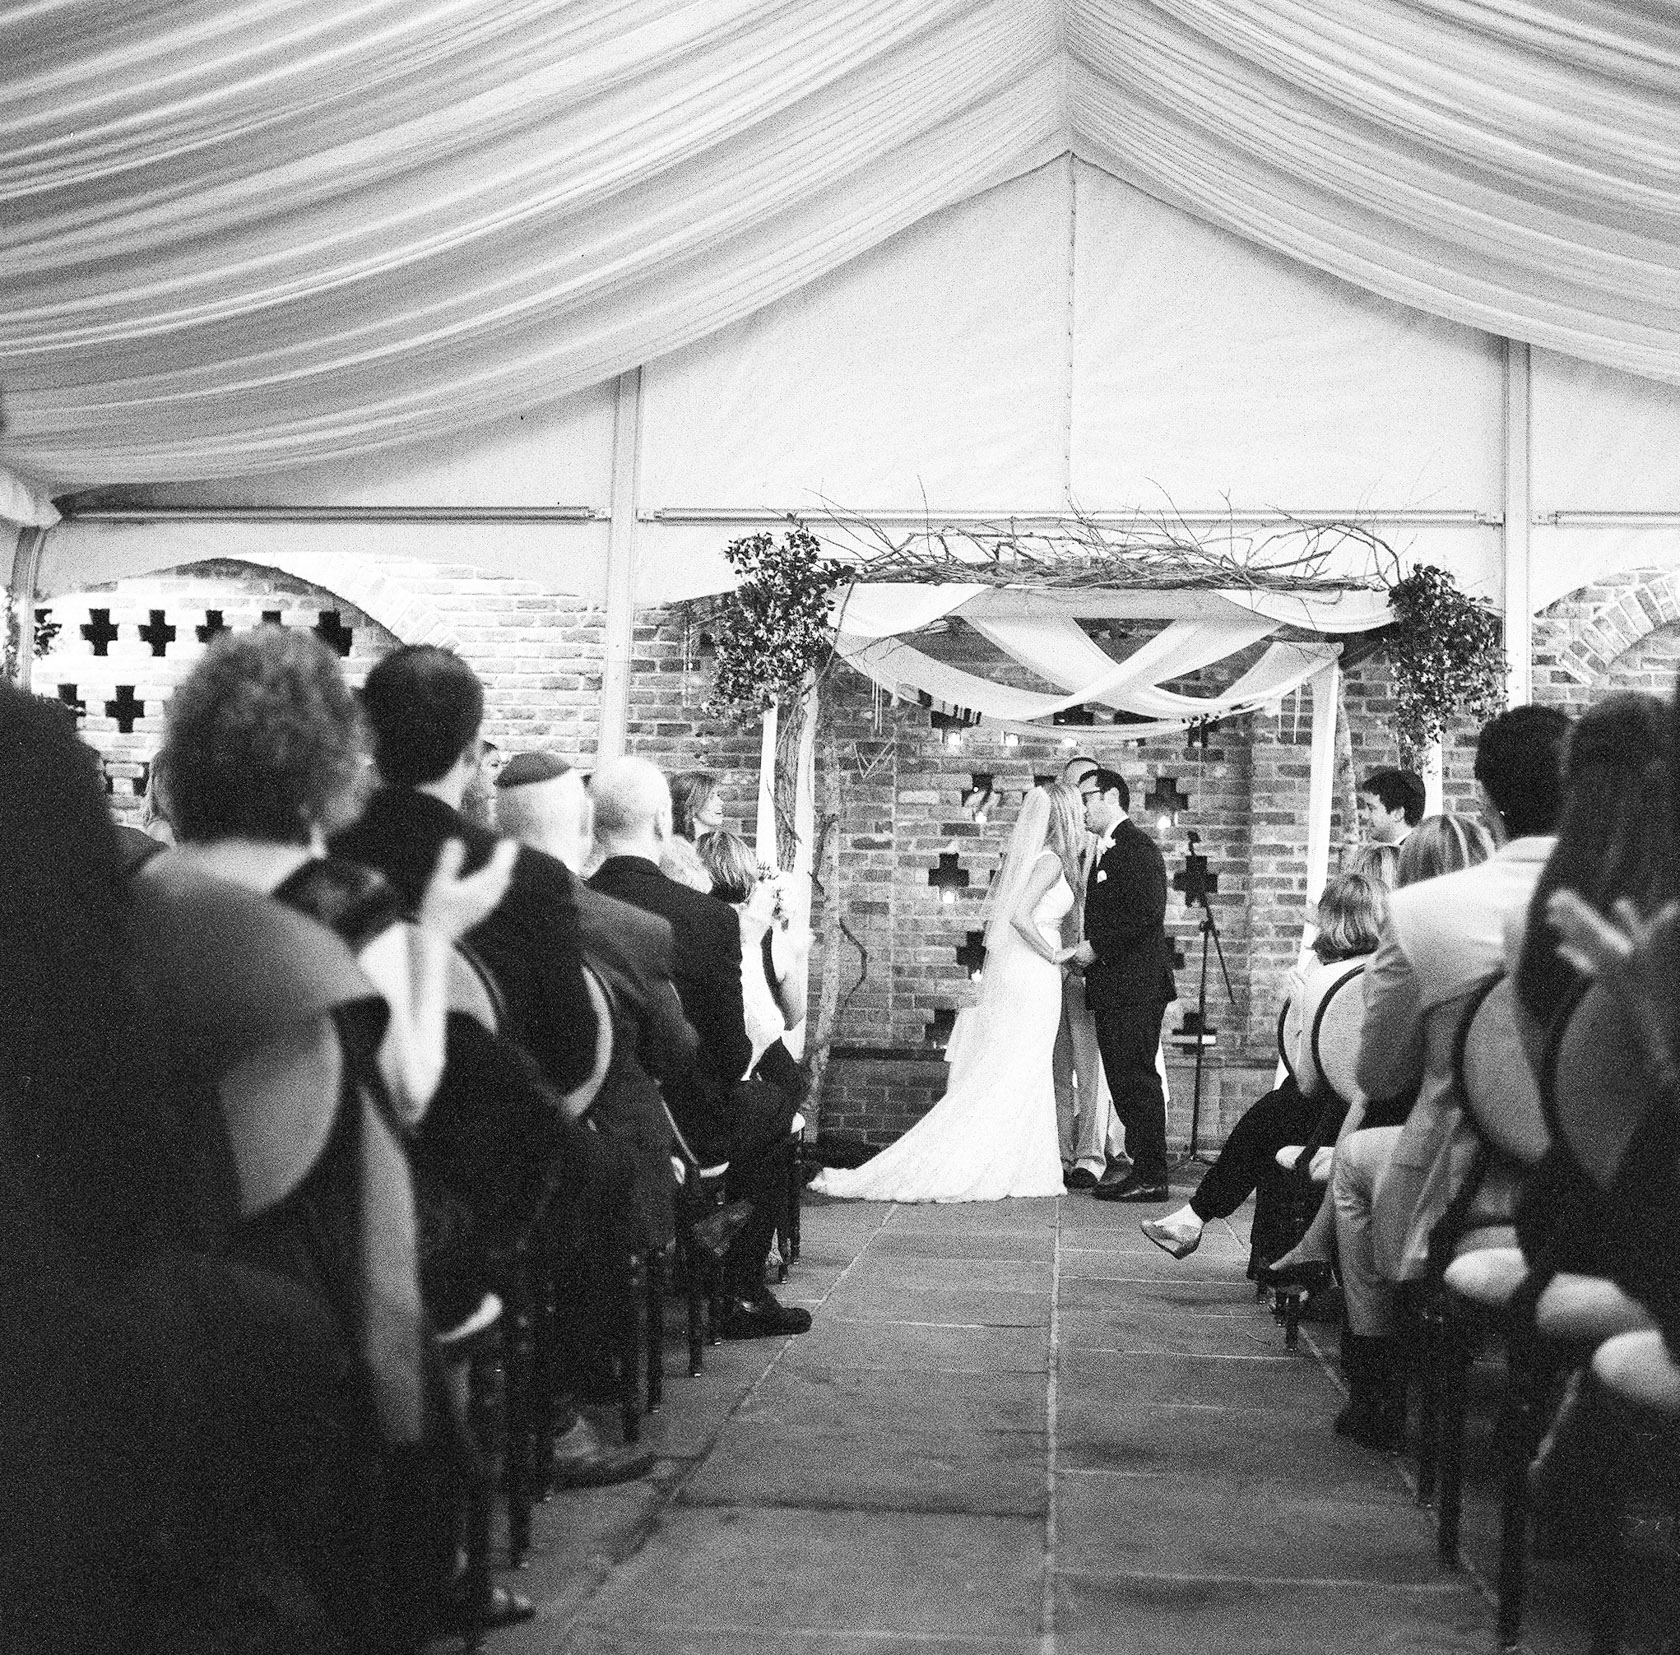 maison dupuy wedding on film 16